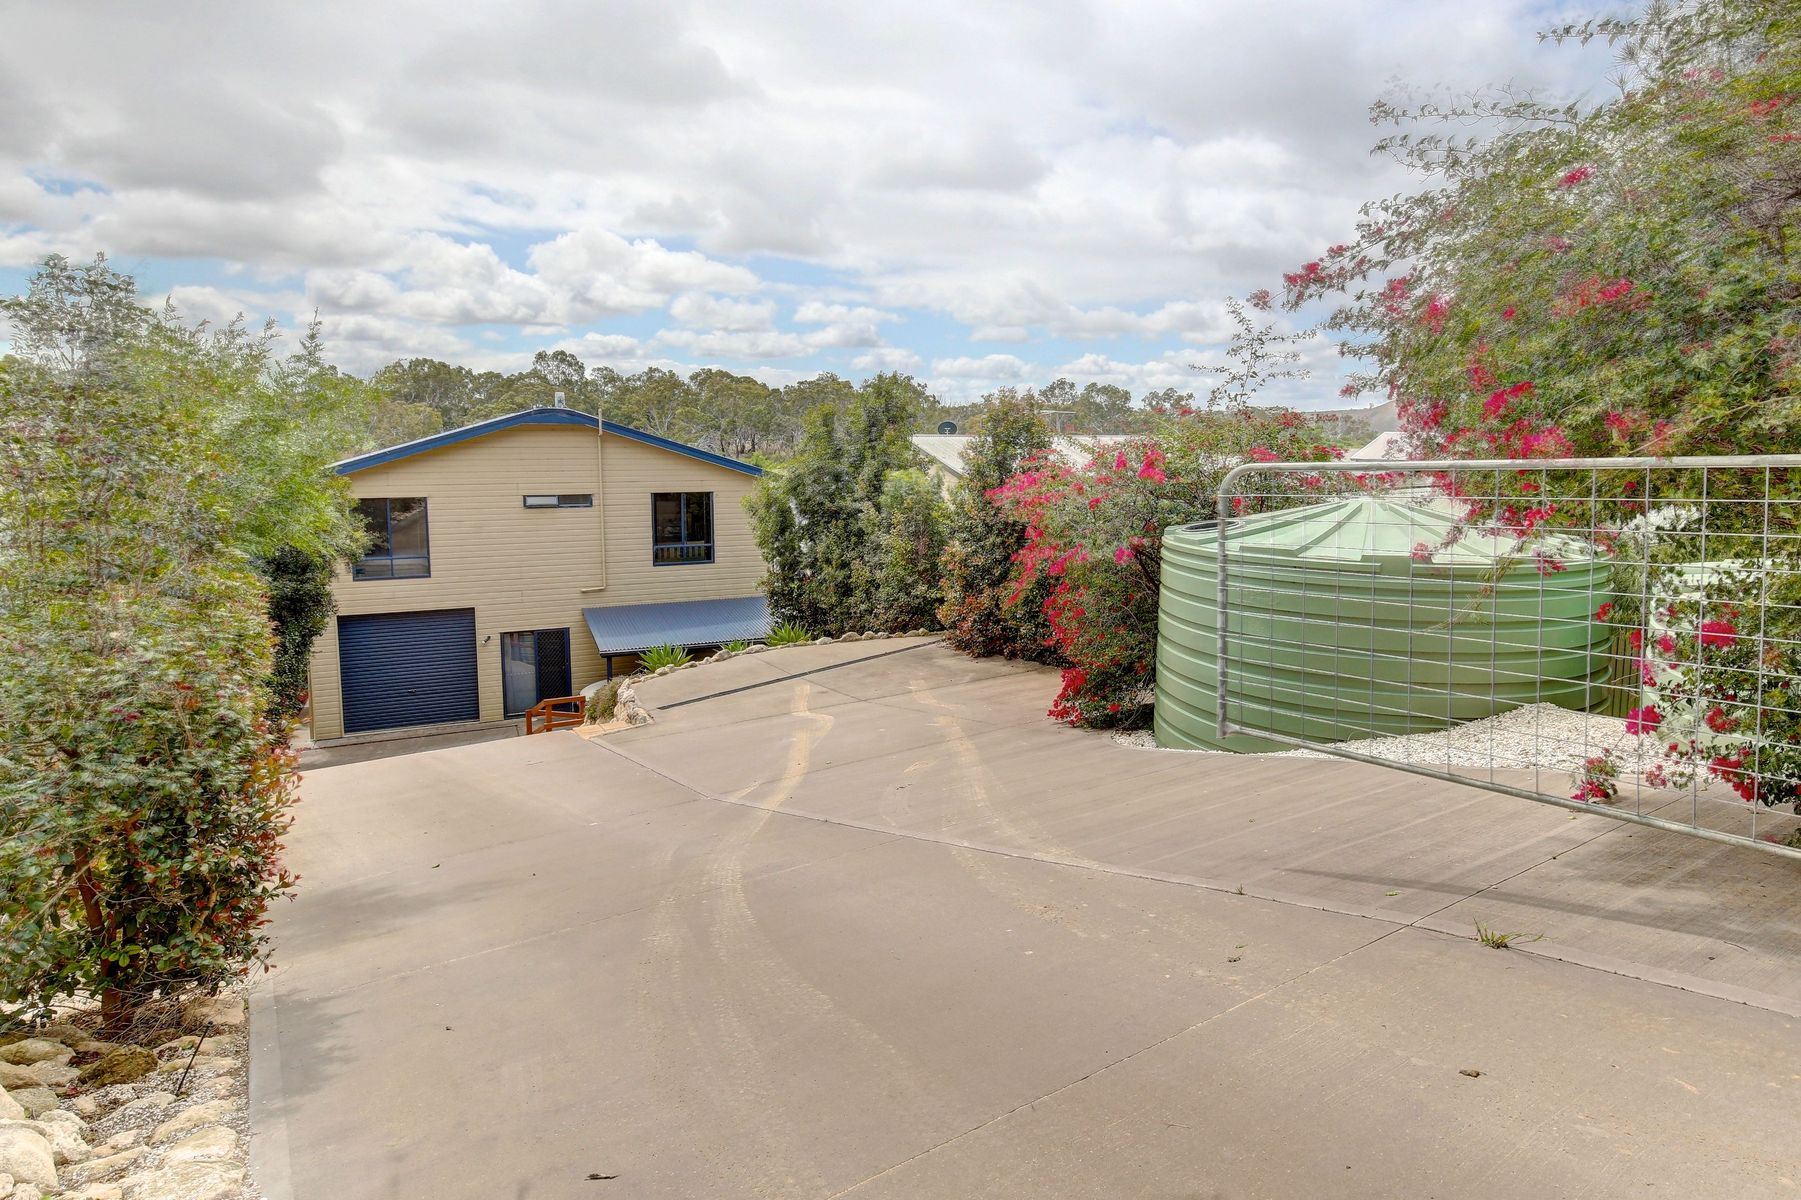 30A Greenbanks Drive, Greenbanks, SA 5253